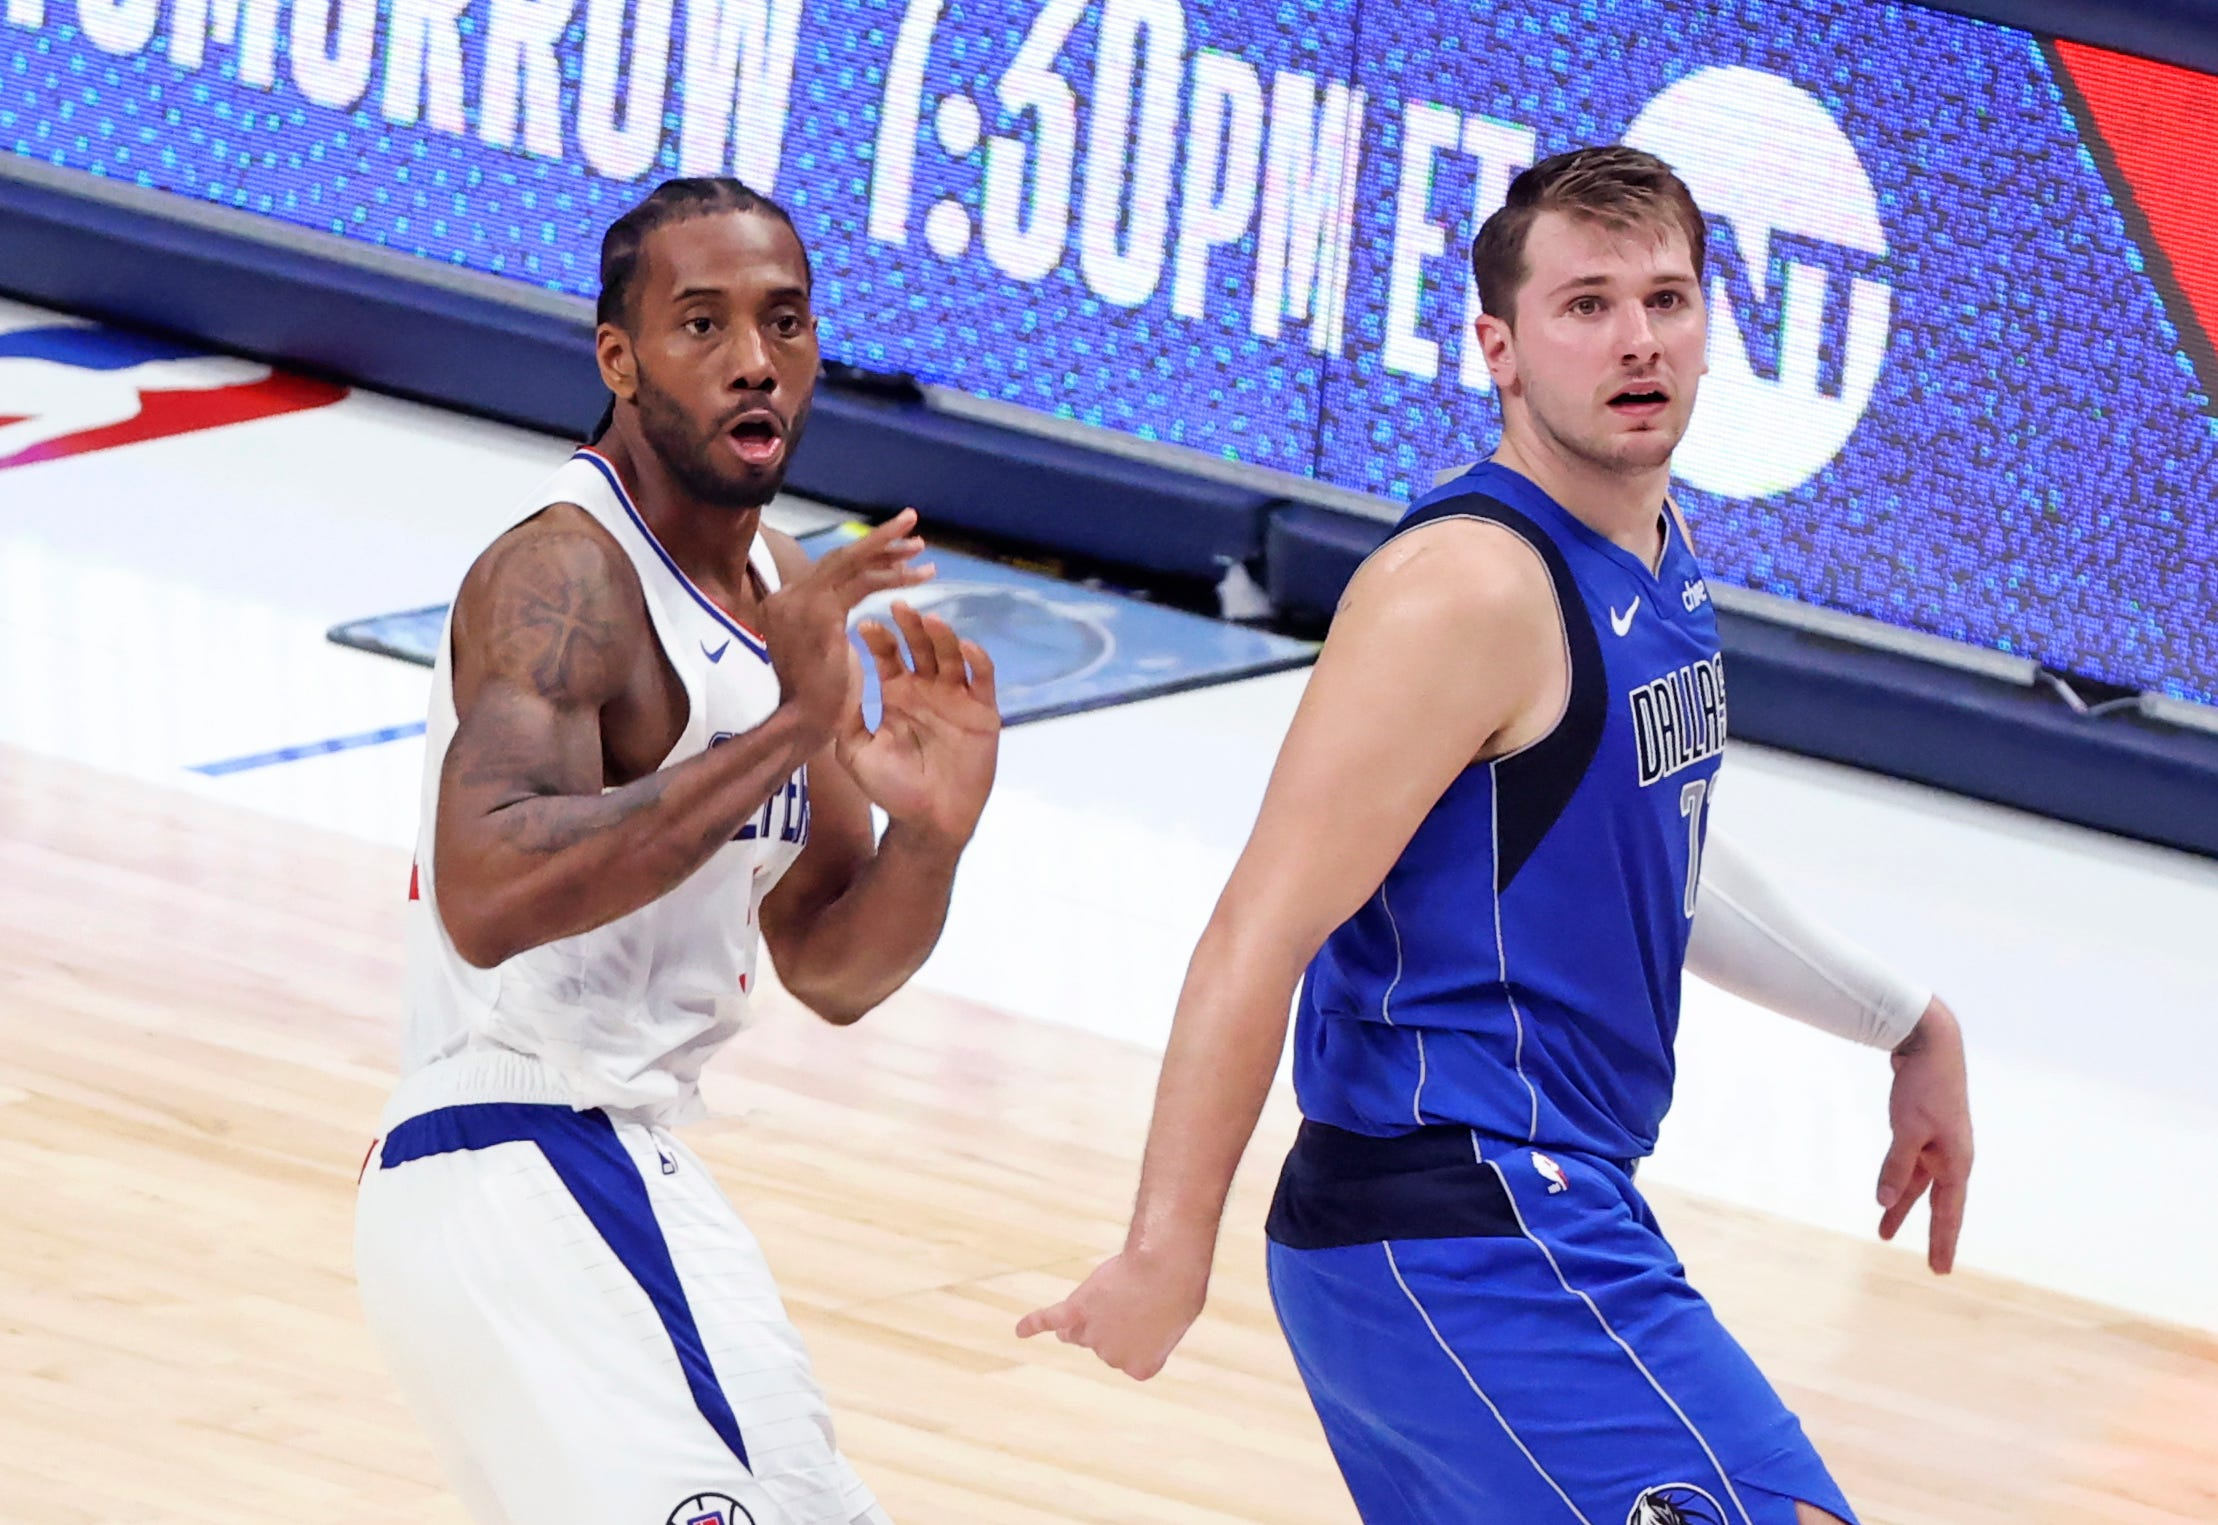 Clippers vs. Mavericks Game 7 picks: Who will advance to the second round in NBA playoffs?